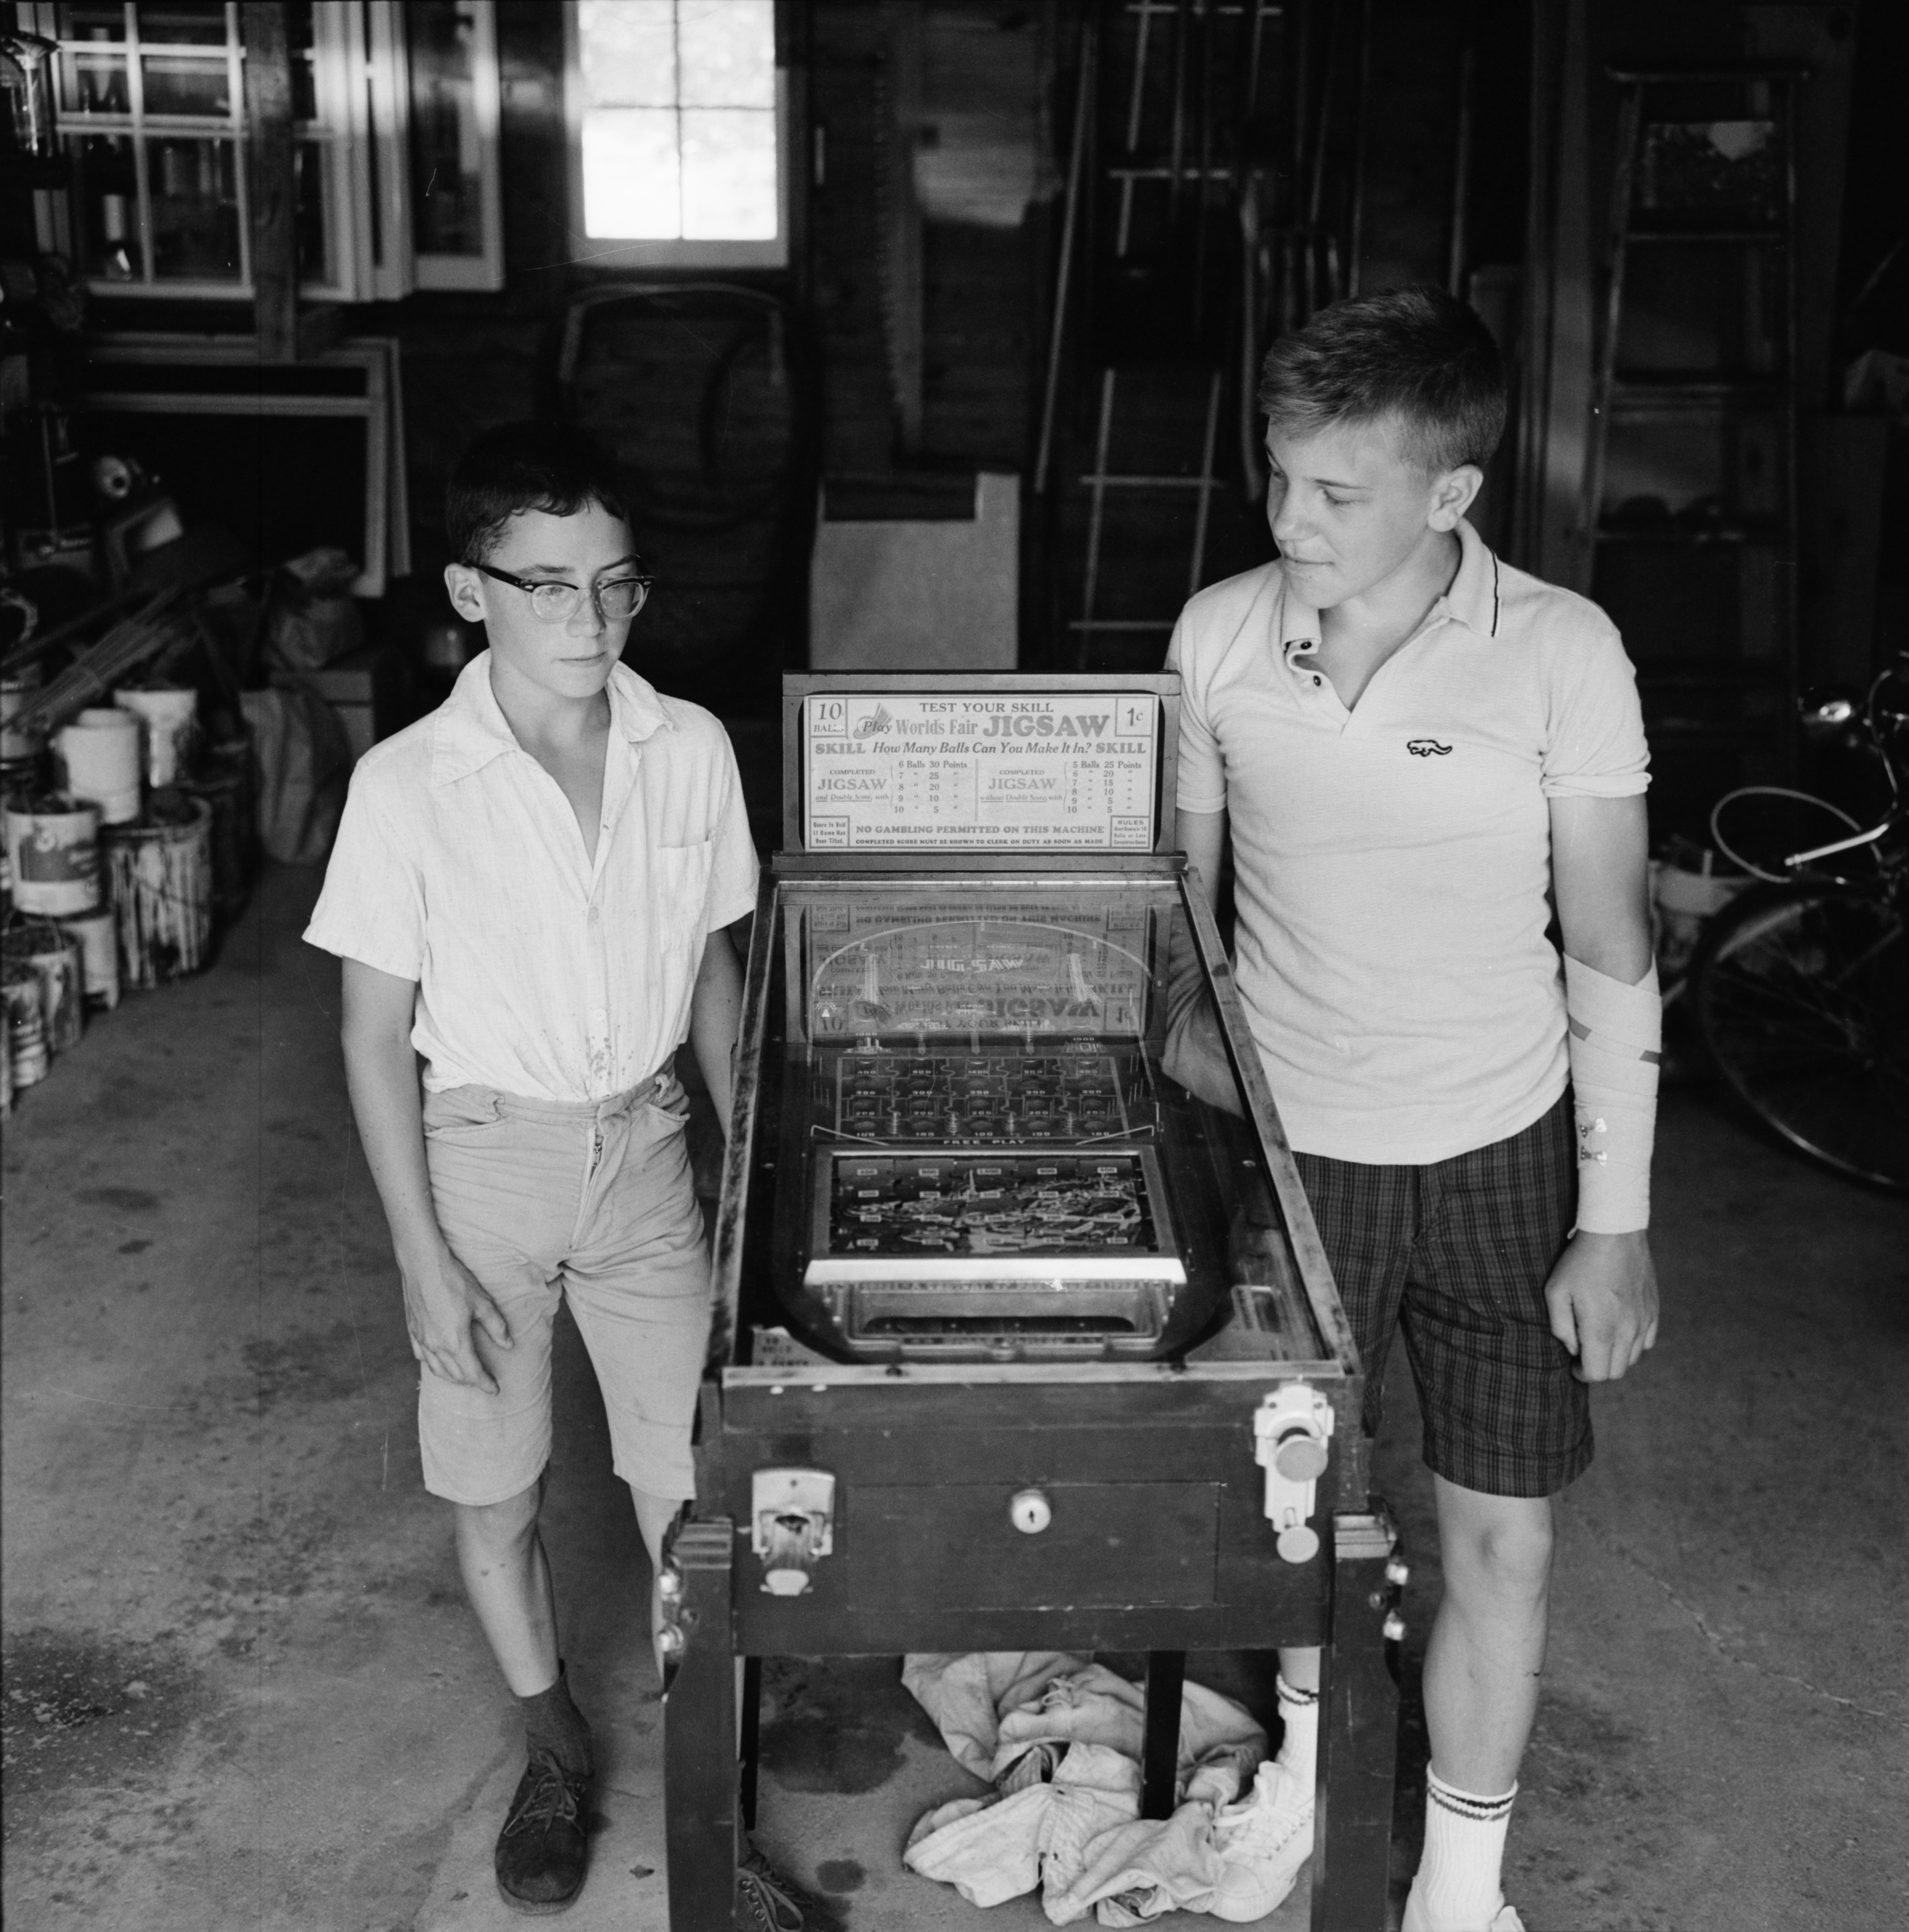 Ann Arbor News boy gets antique pinball machine from 1933 World's Fair, June 1964 image